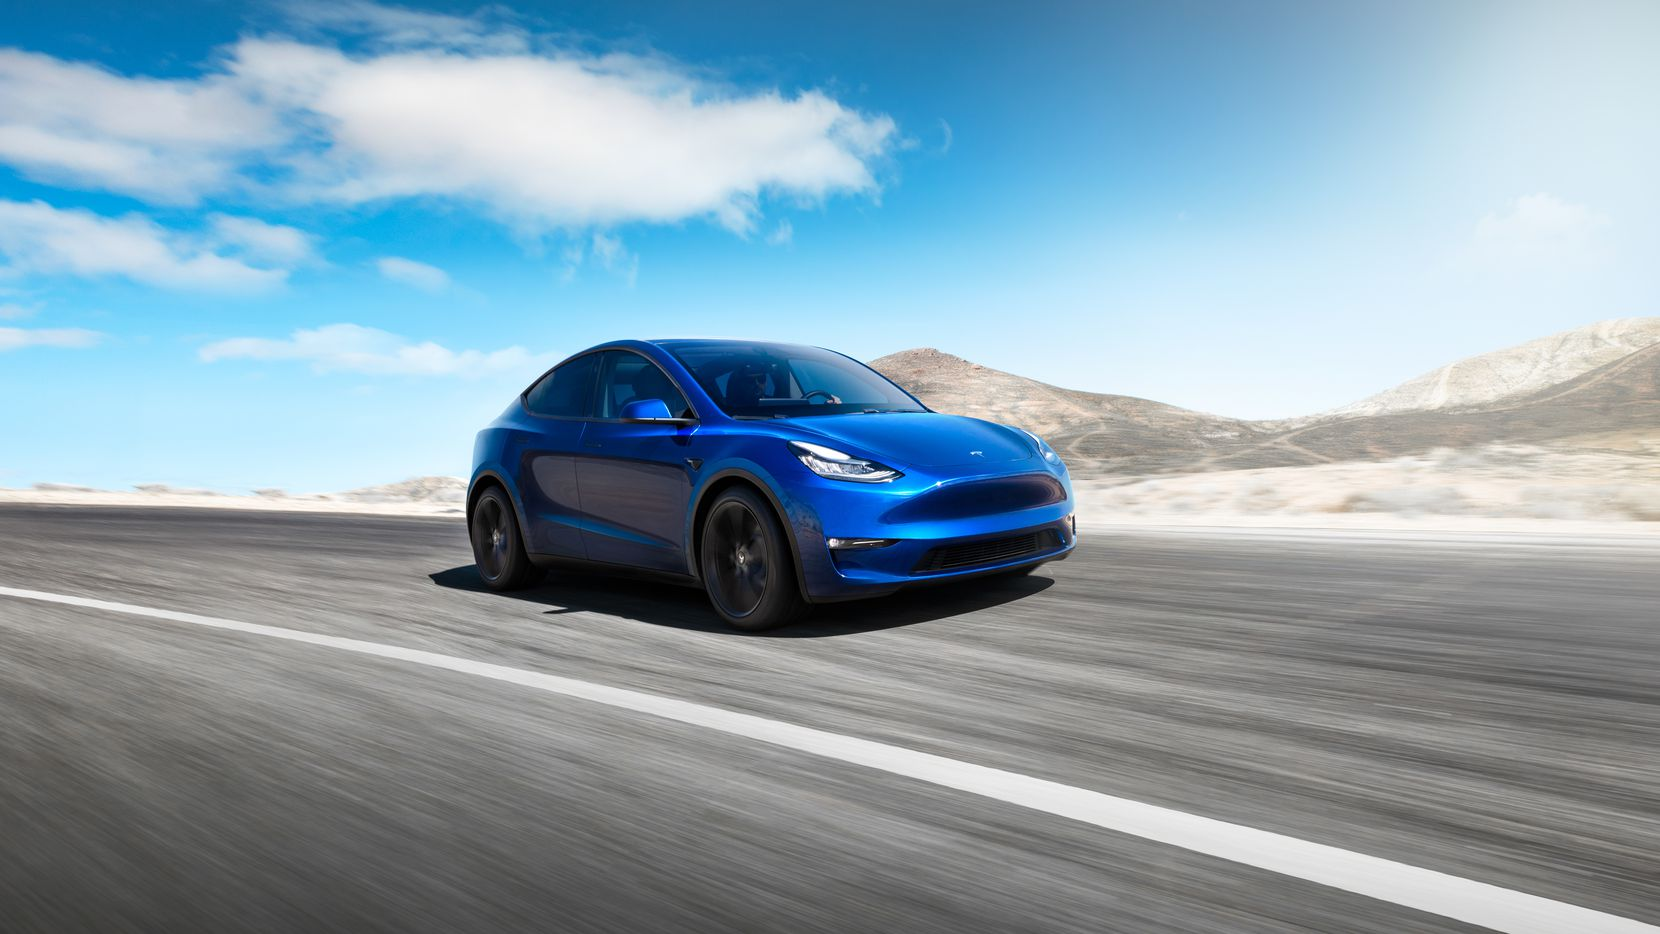 The new plant will serve as a second production site for Tesla's Model Y SUV. It will also build Tesla's Cybertruck pickup and its coming semi-tractor truck.